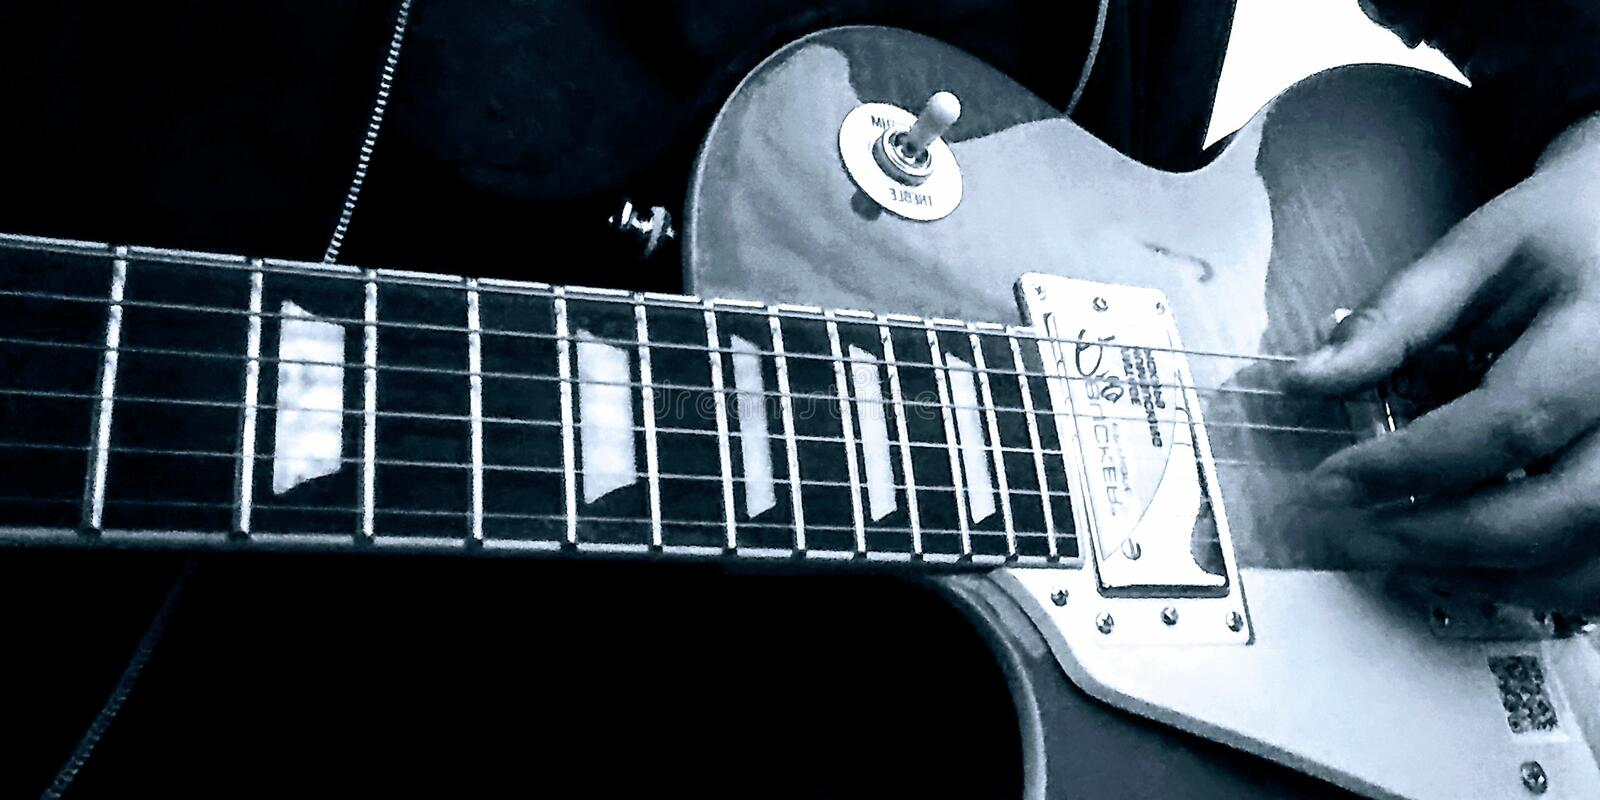 Les Paul image stock